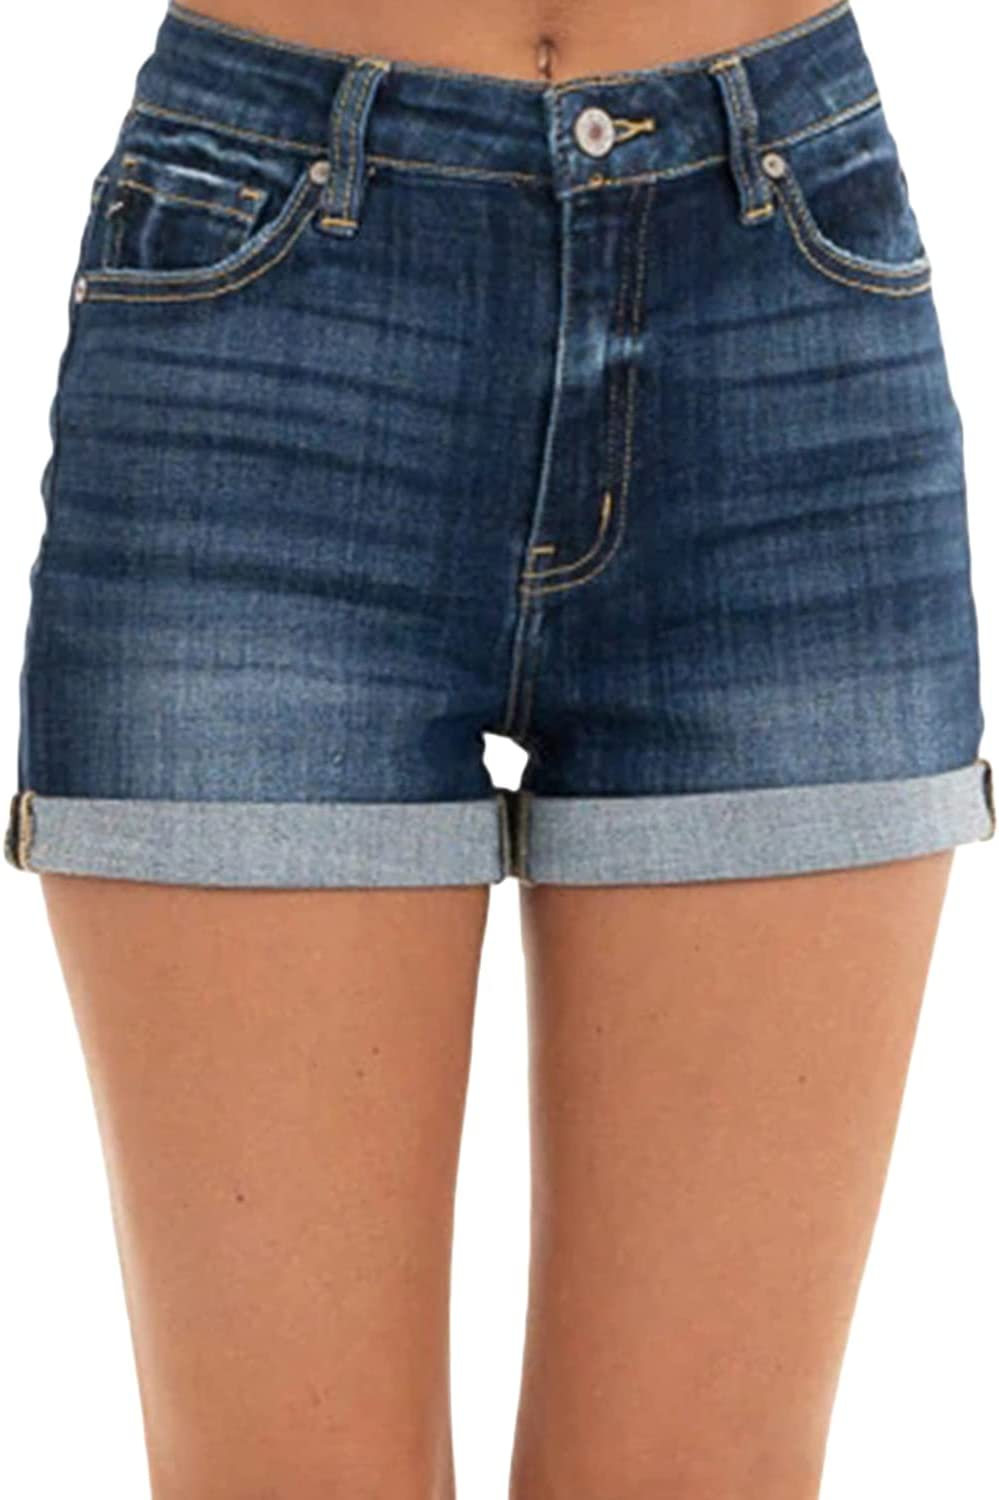 Women's Solid Color Rolled Hem Denim Shorts High Waisted Stretchy Juniors Jeans Shorts Casual Vintage Hot Short Pants (Dark Blue,Small)